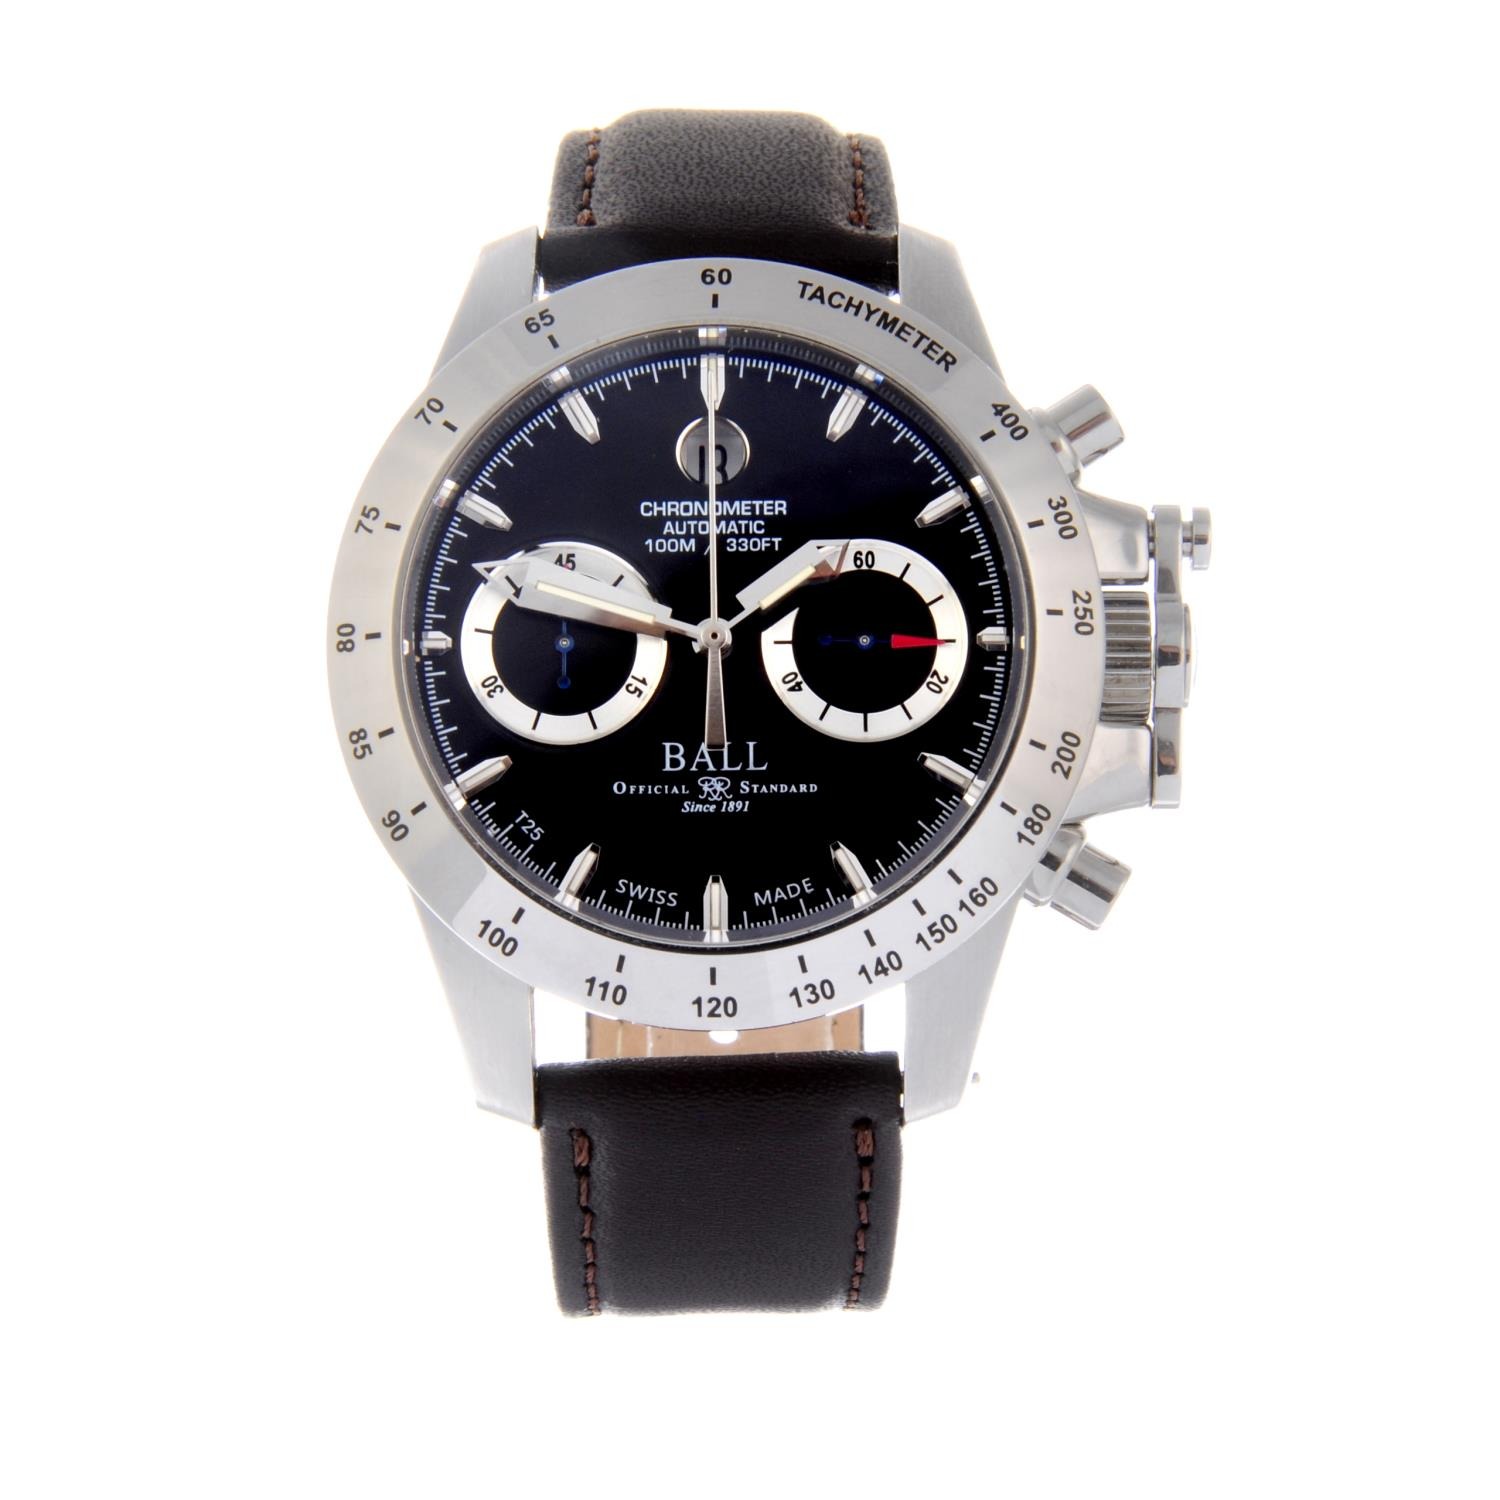 Lot 4 - BALL - a gentleman's Engineer Hydrocarbon chronograph wrist watch.